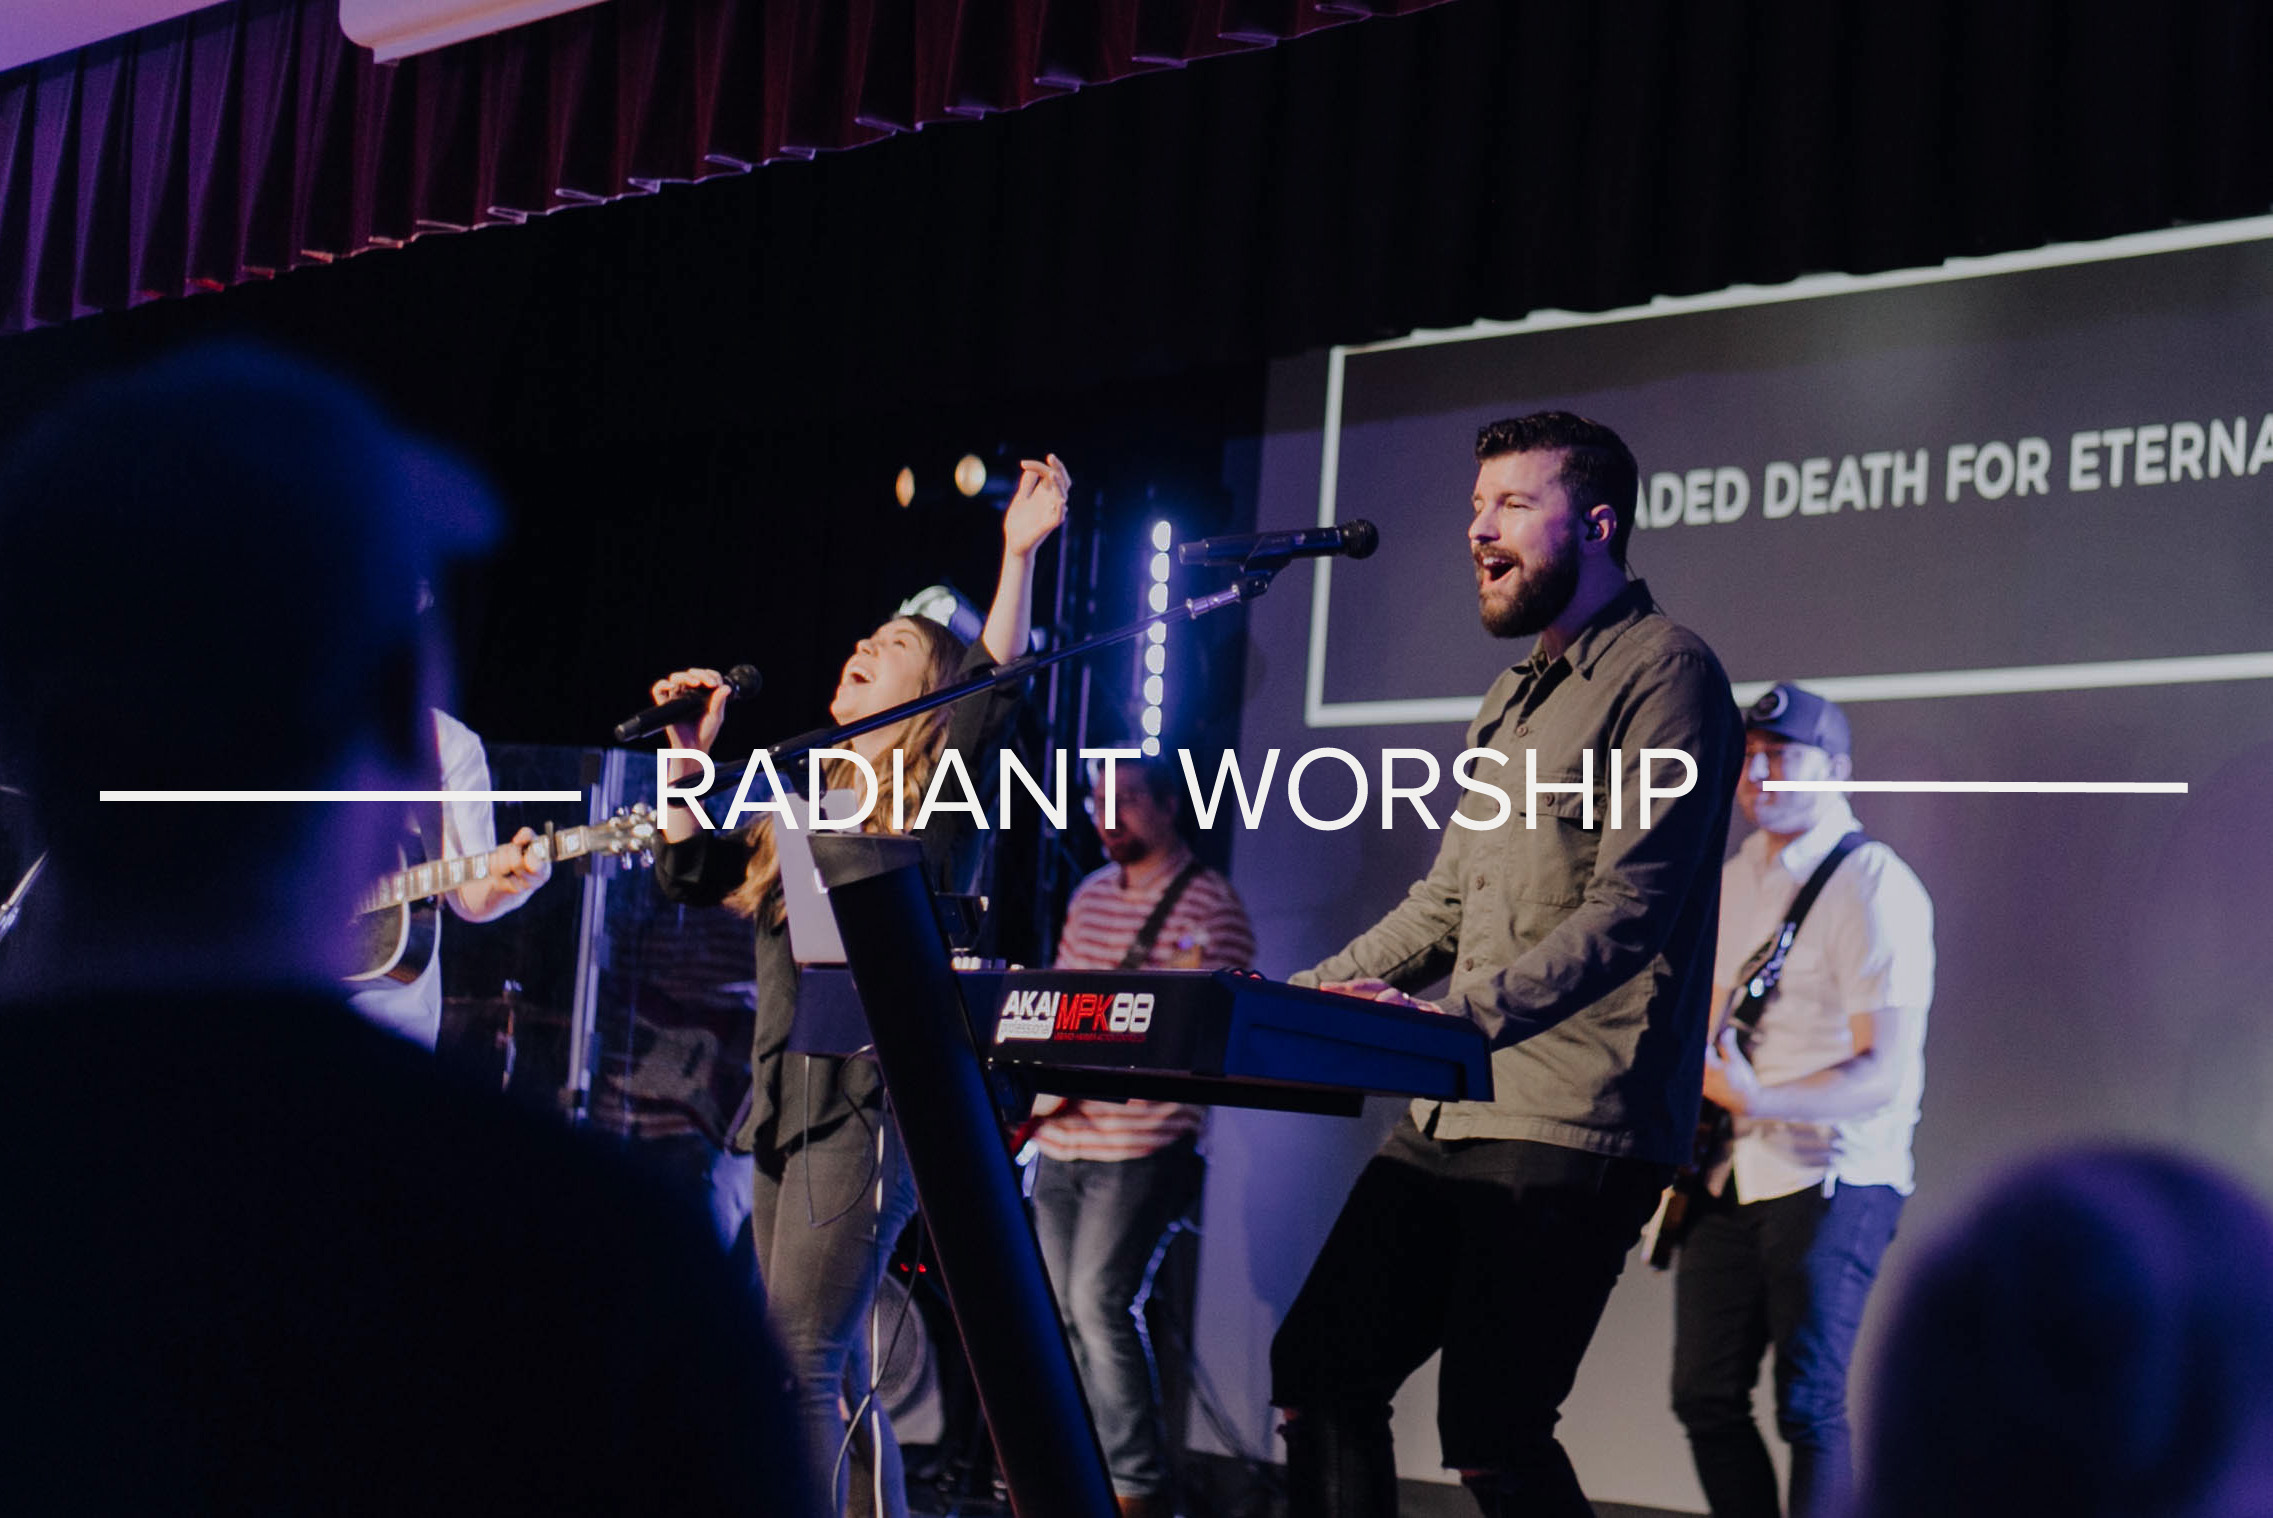 RADIANT WORSHIP - A team of musicians and vocalists who lead our congregation in time of worship on Sunday mornings. Audition required.